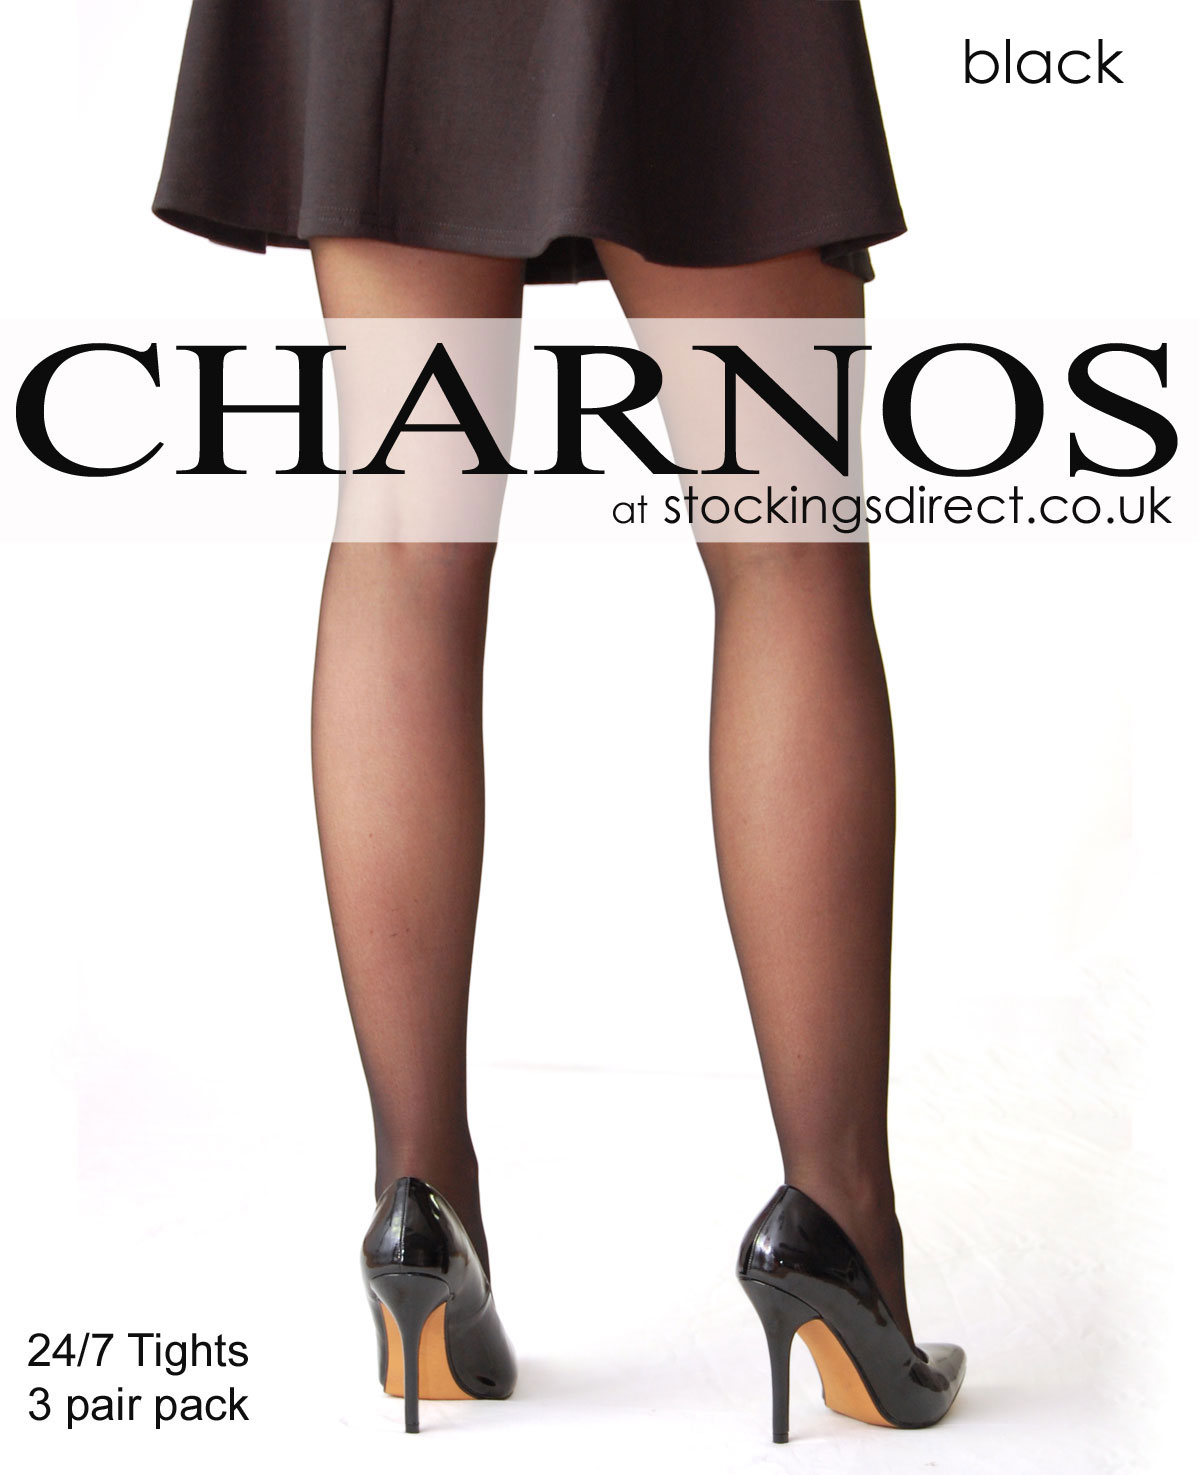 18606d4a7c5 Charnos 24 7 Tights (3 Pair Pack) at Stockings Direct